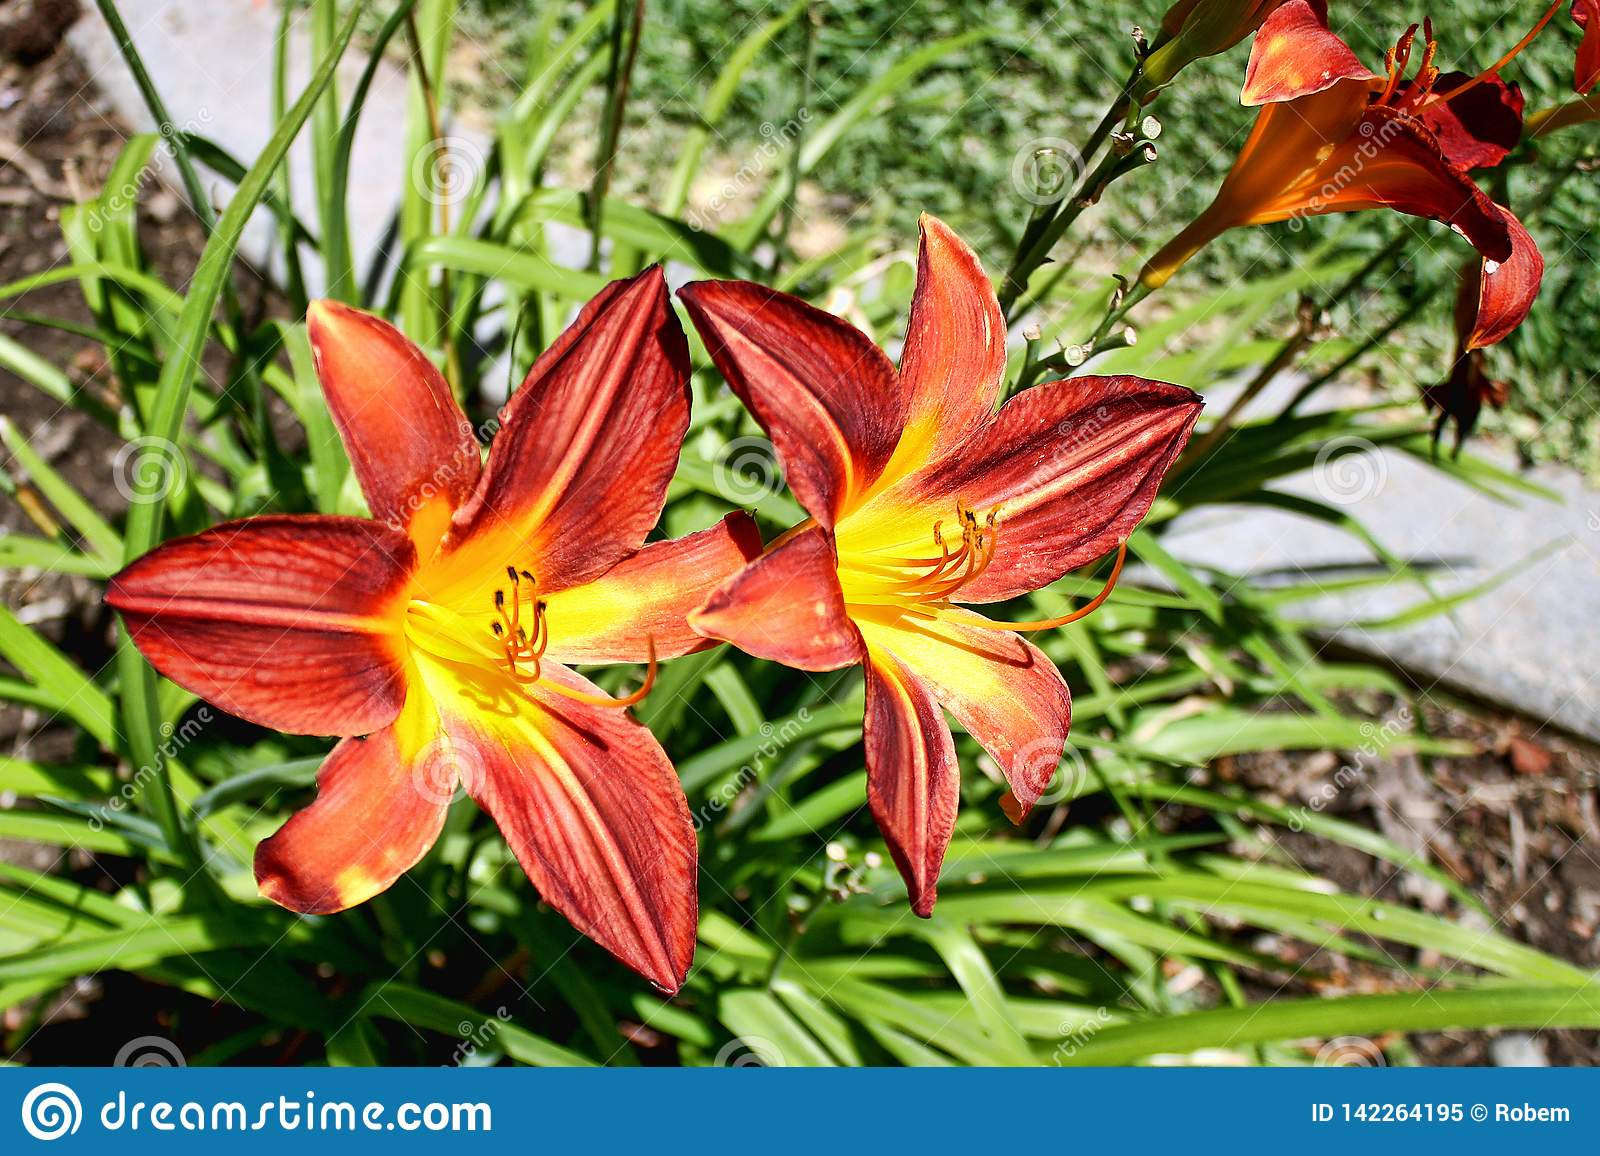 Close Up Of Orange Tiger Lily Flowers And Green Leaves In A Garden